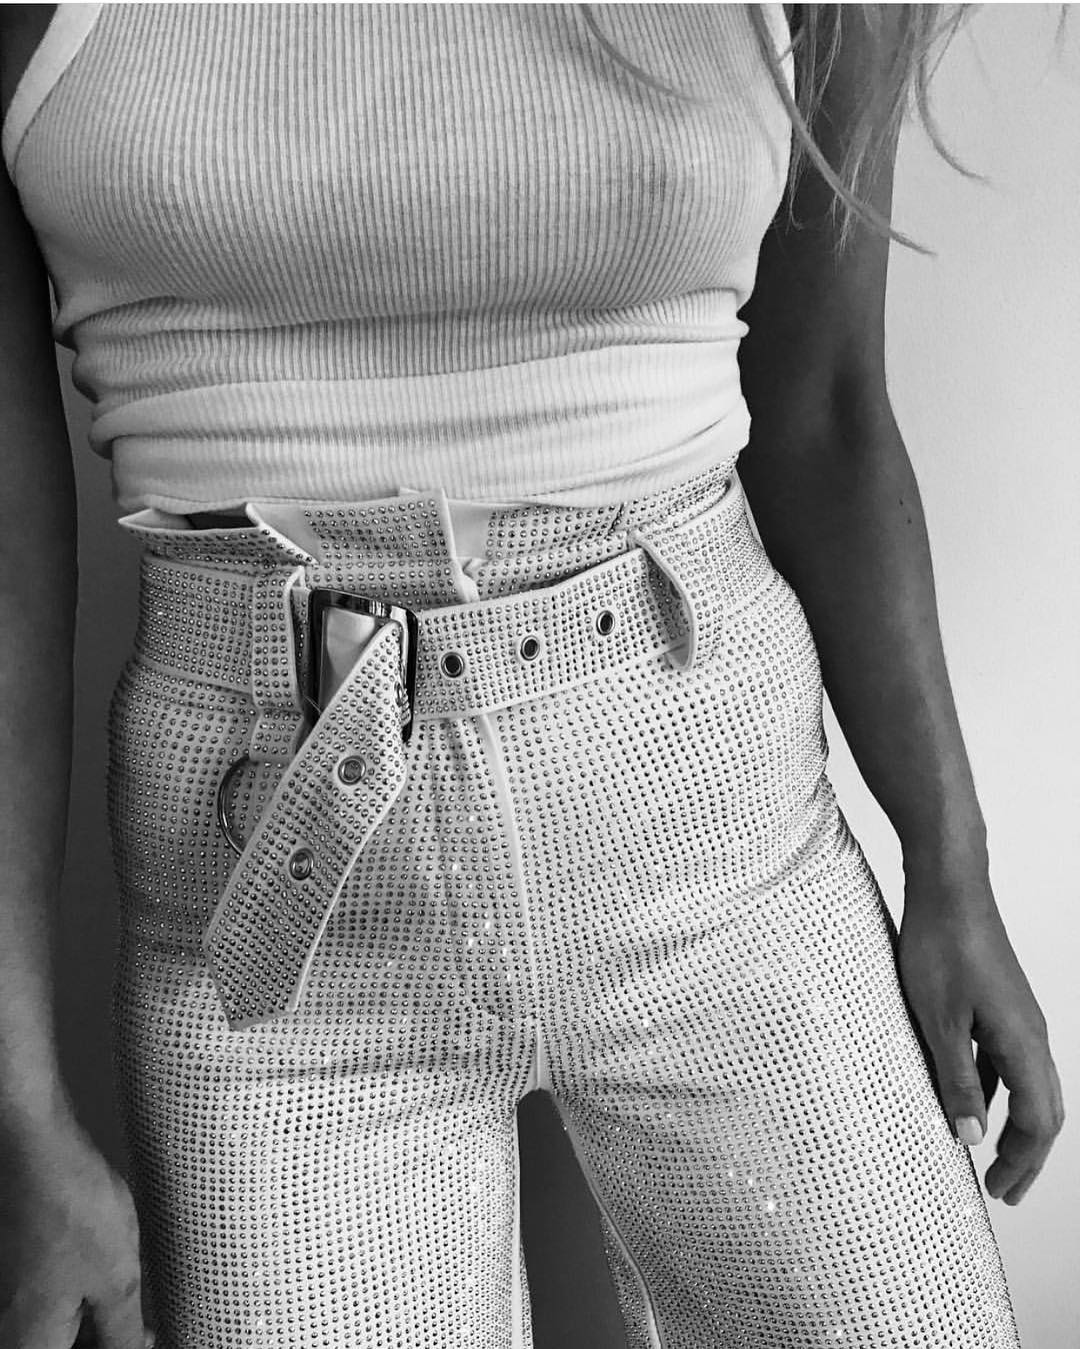 All Over Studded High-Rise Pants In White With White Tank Top For Summer 2019